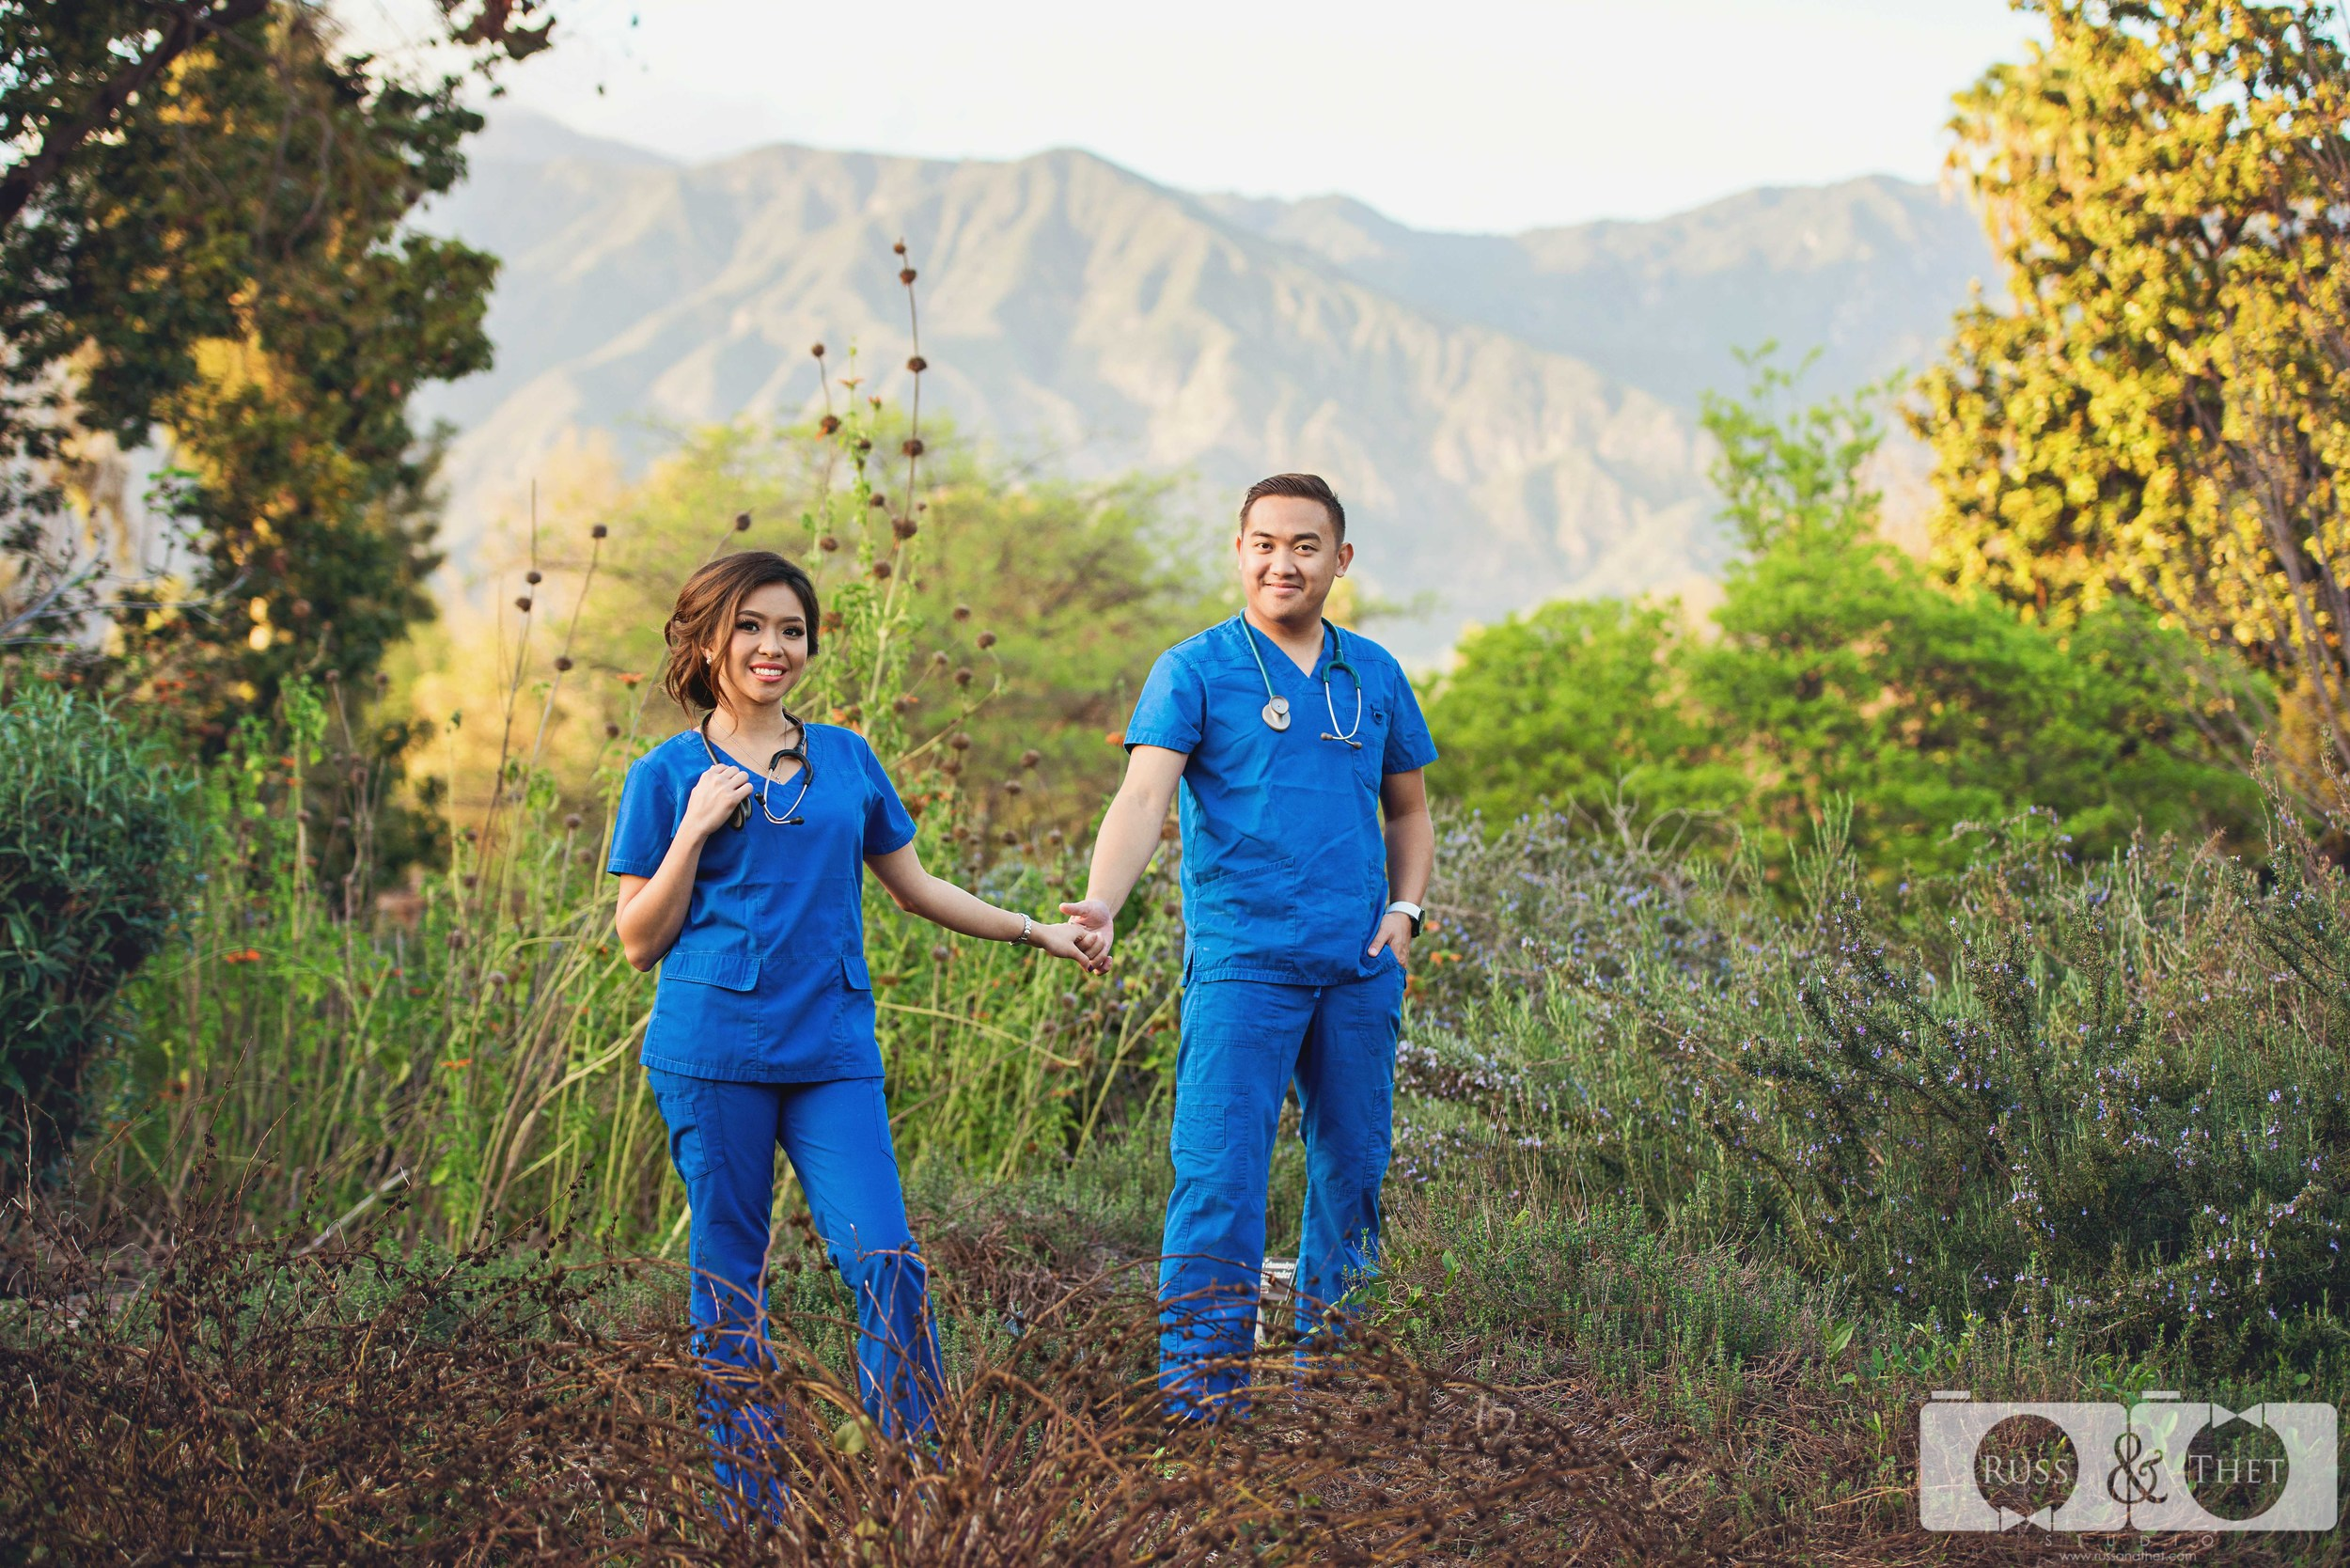 LA-arboretum-engagement-session-28.JPG